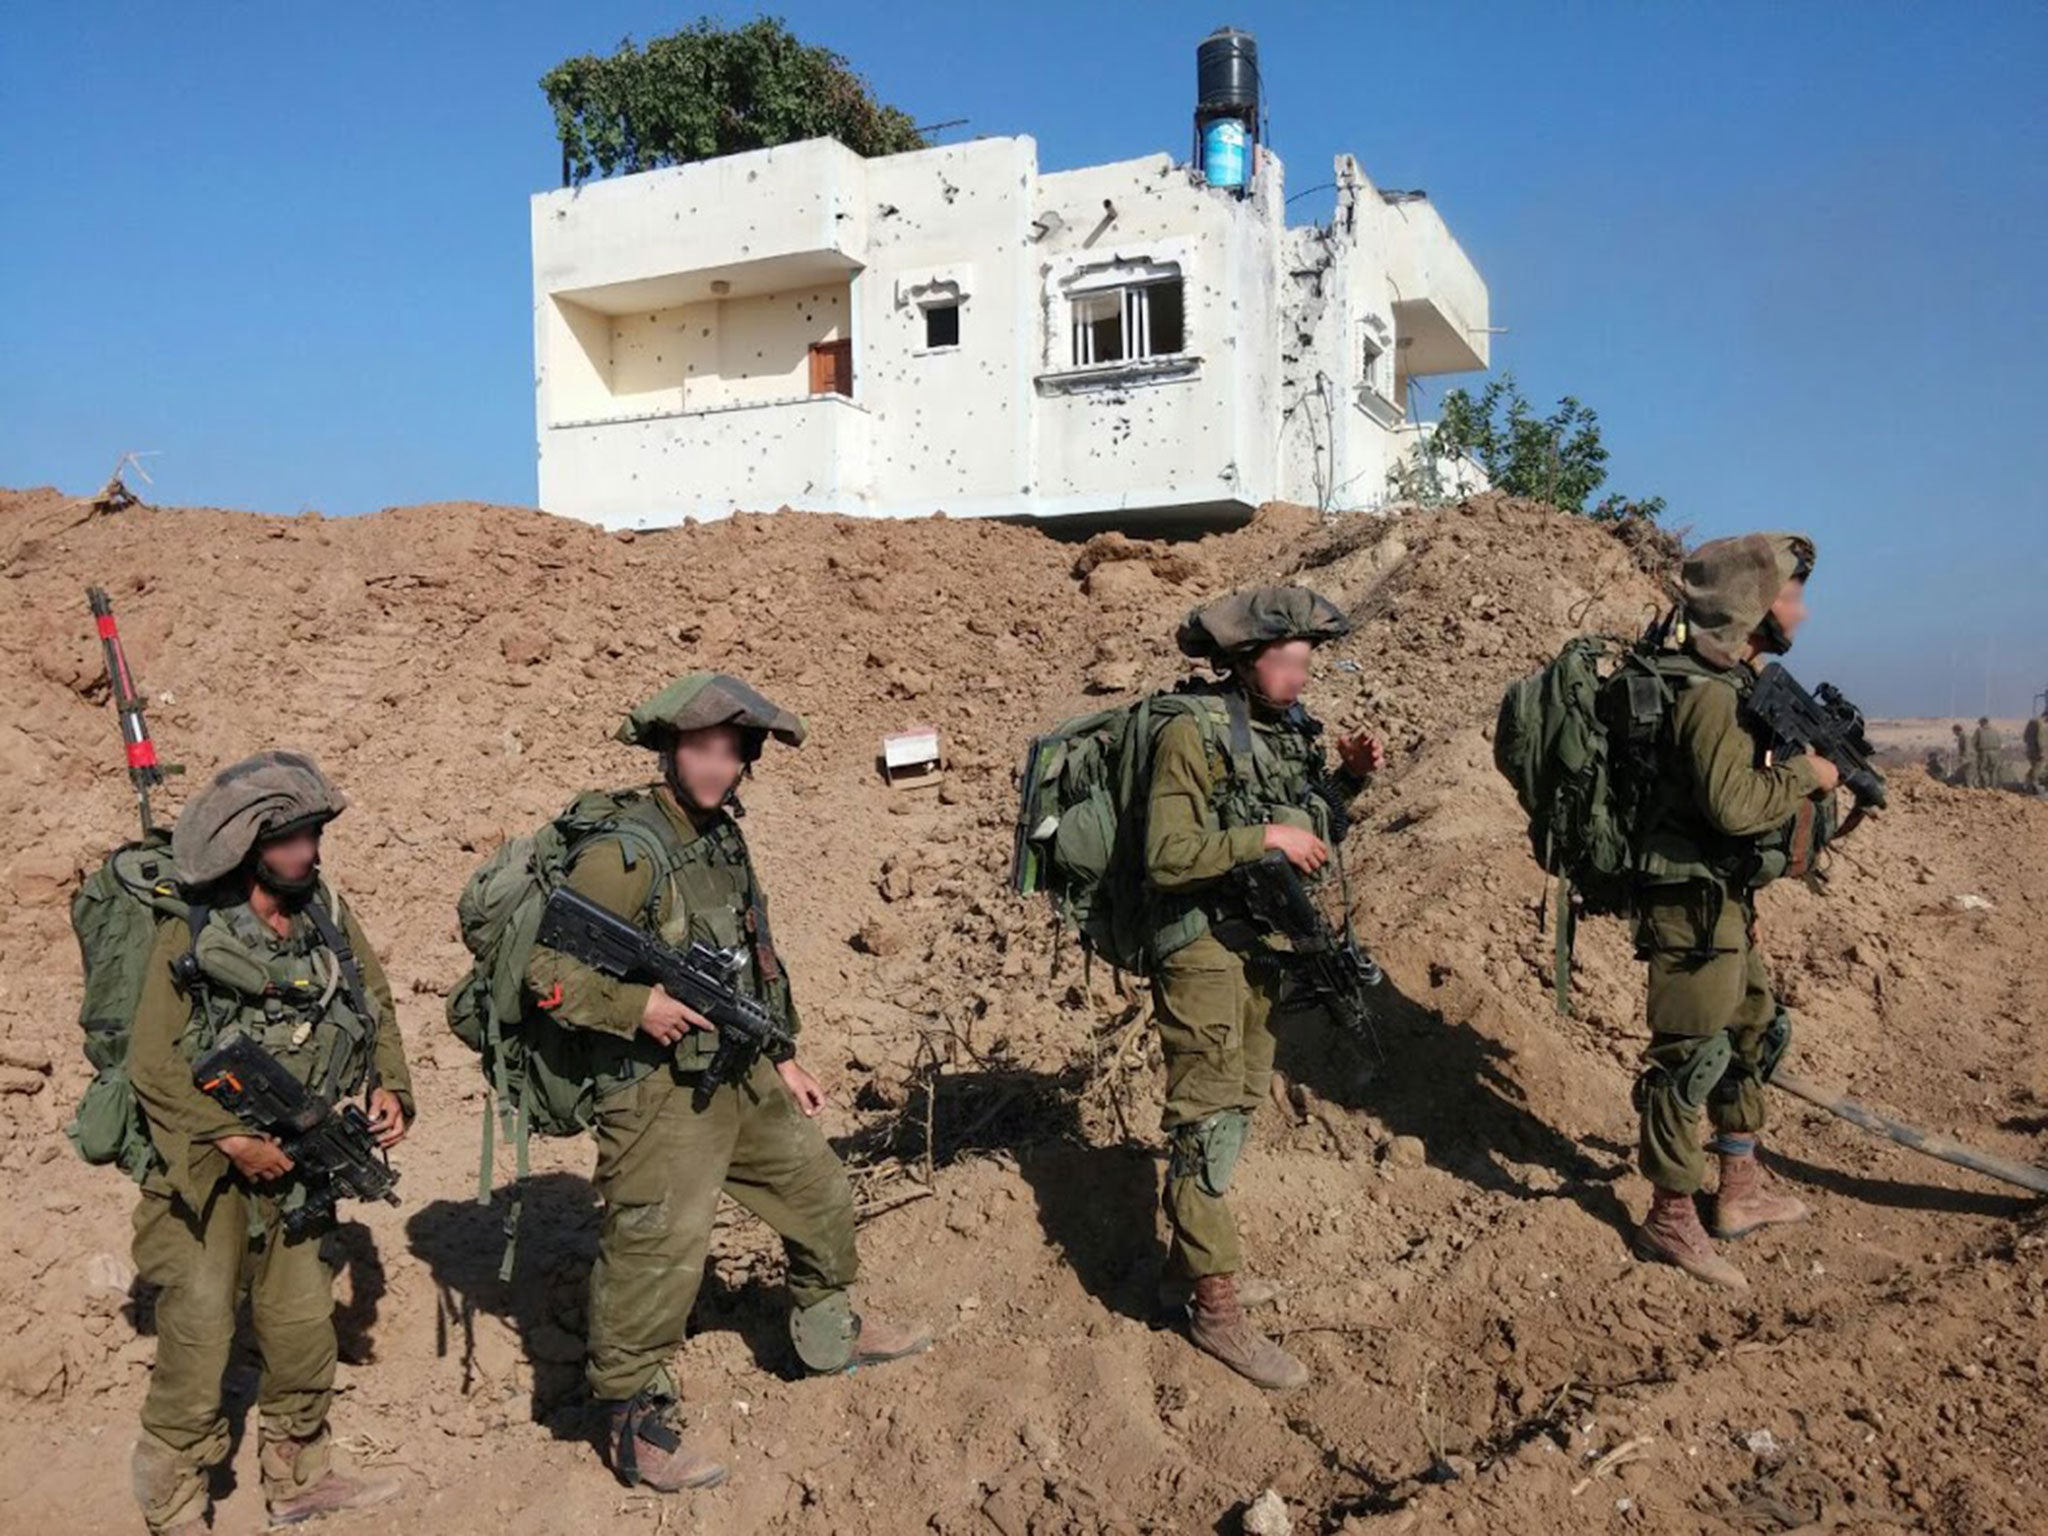 Fire at every person': Israeli soldiers reveal they were ordered to